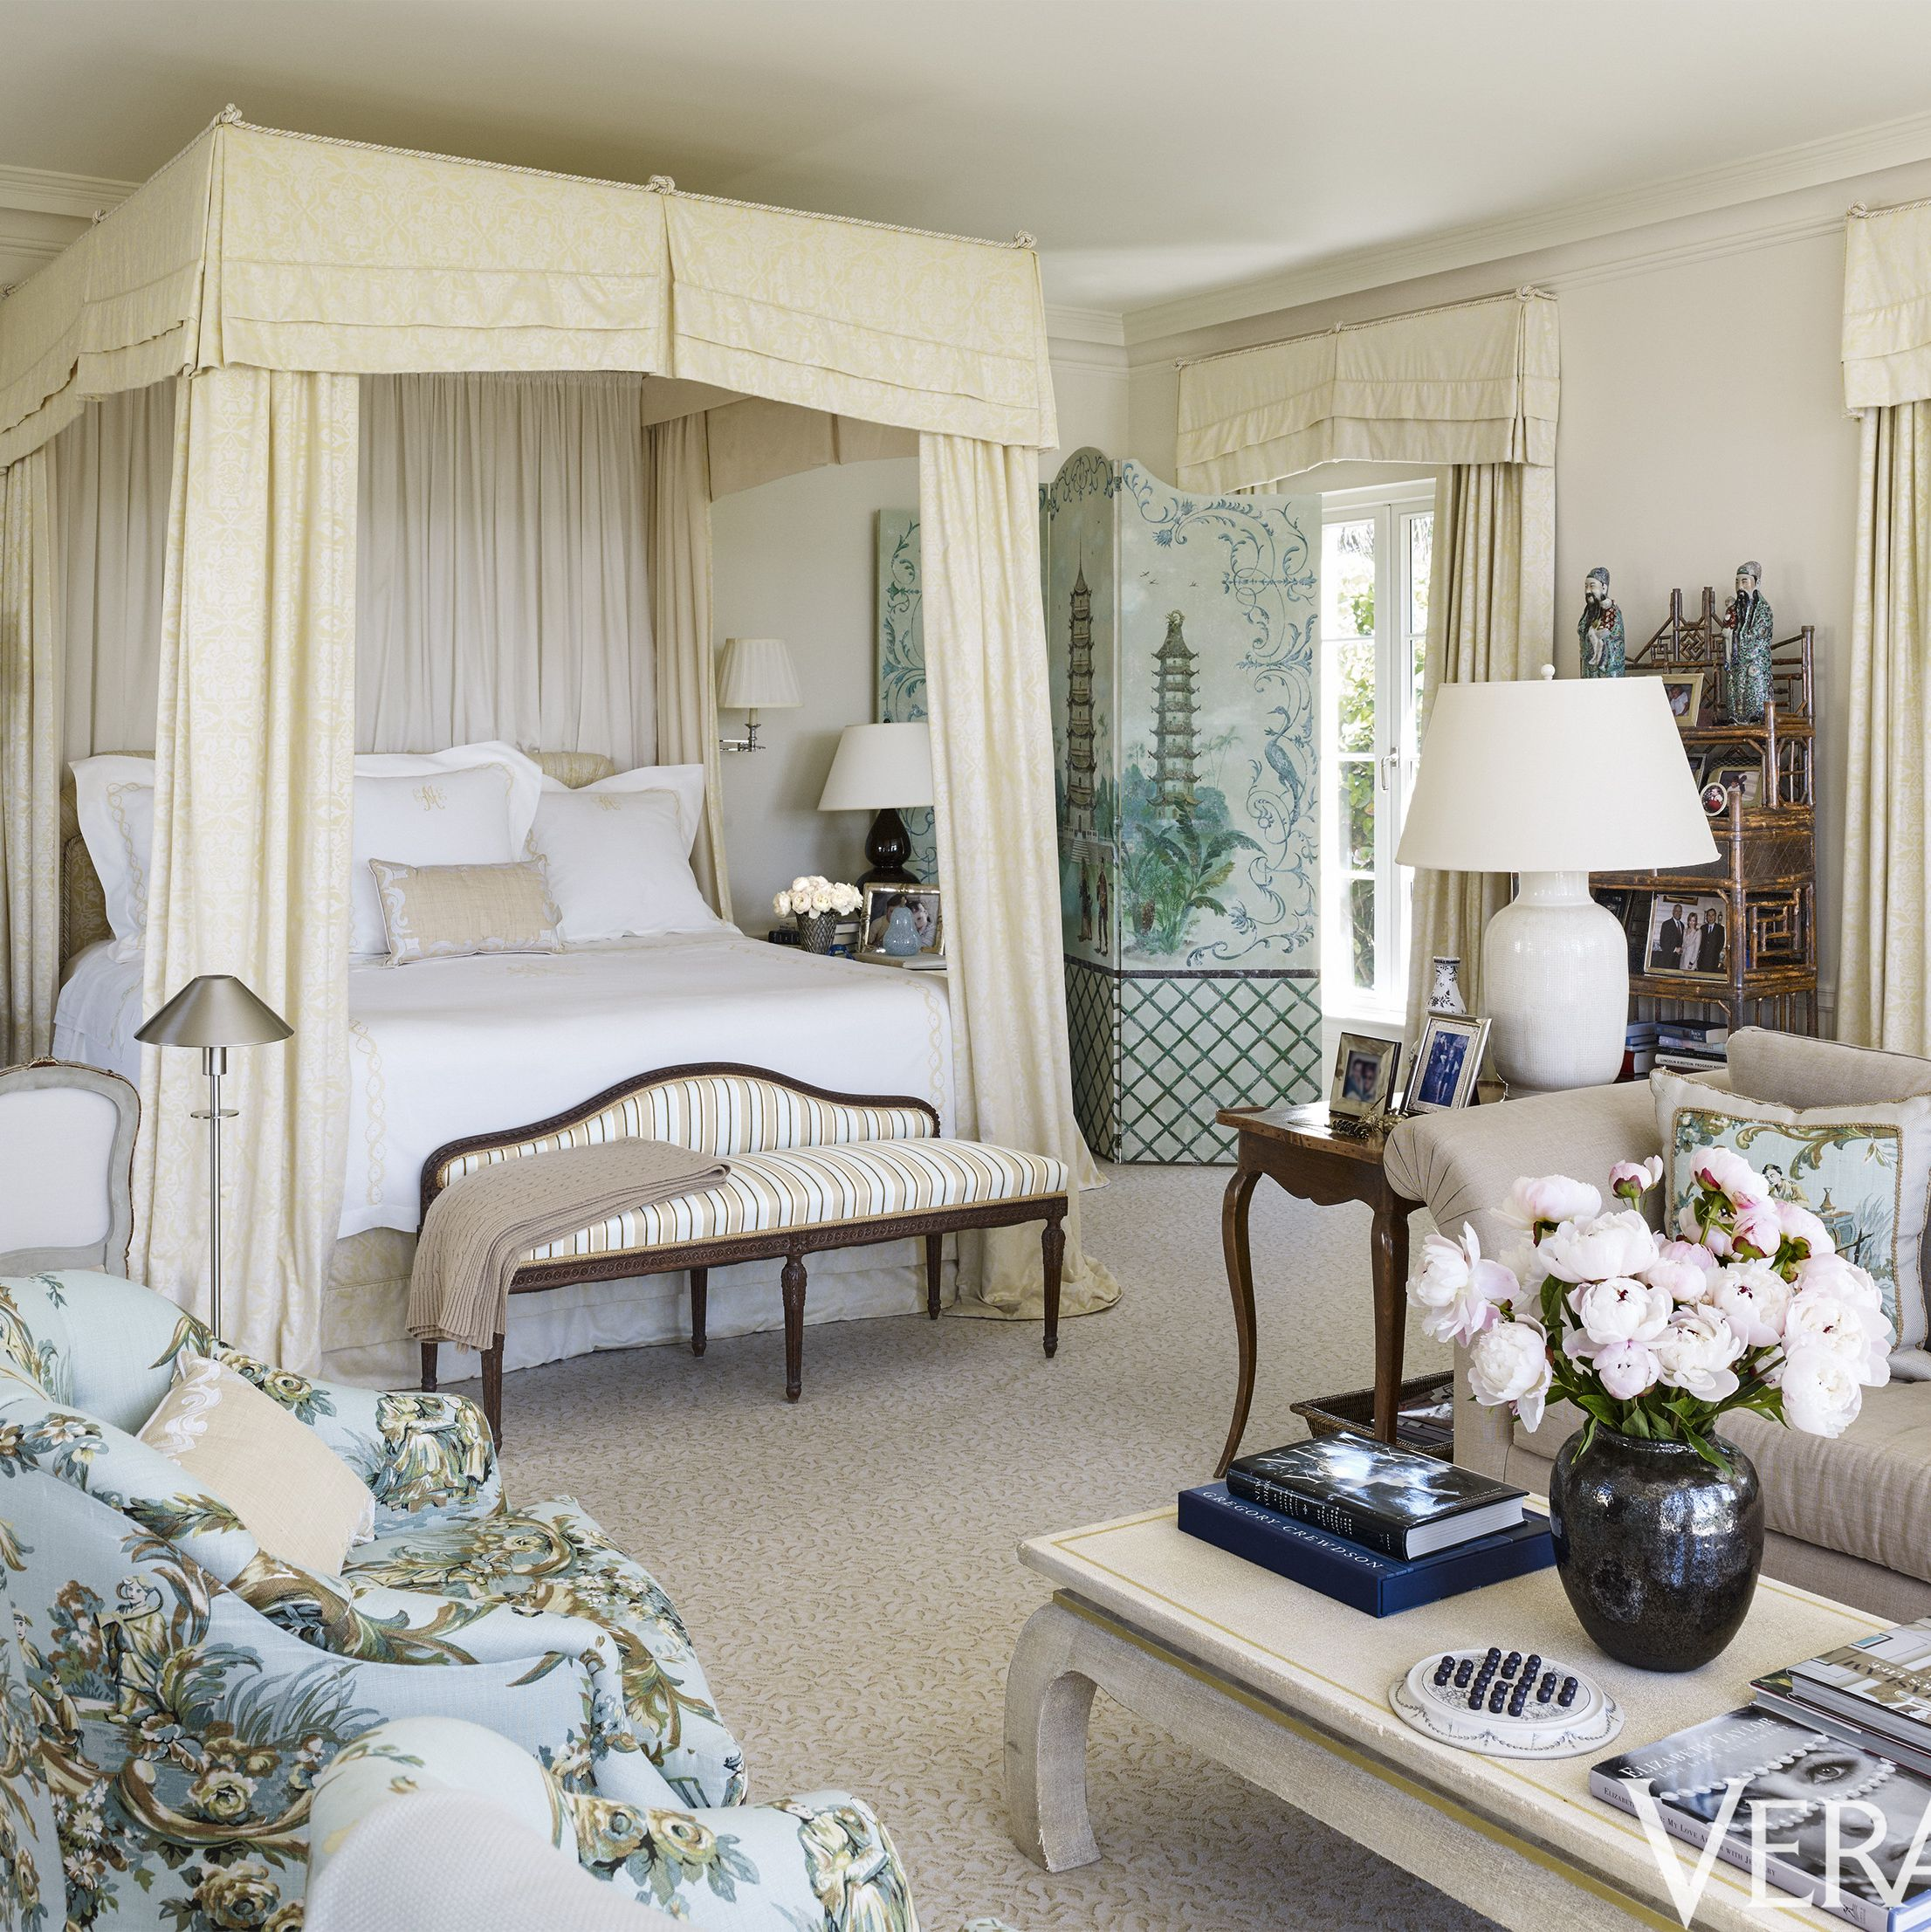 Homes rooms 30 best bedroom decor ideas for a stylish space